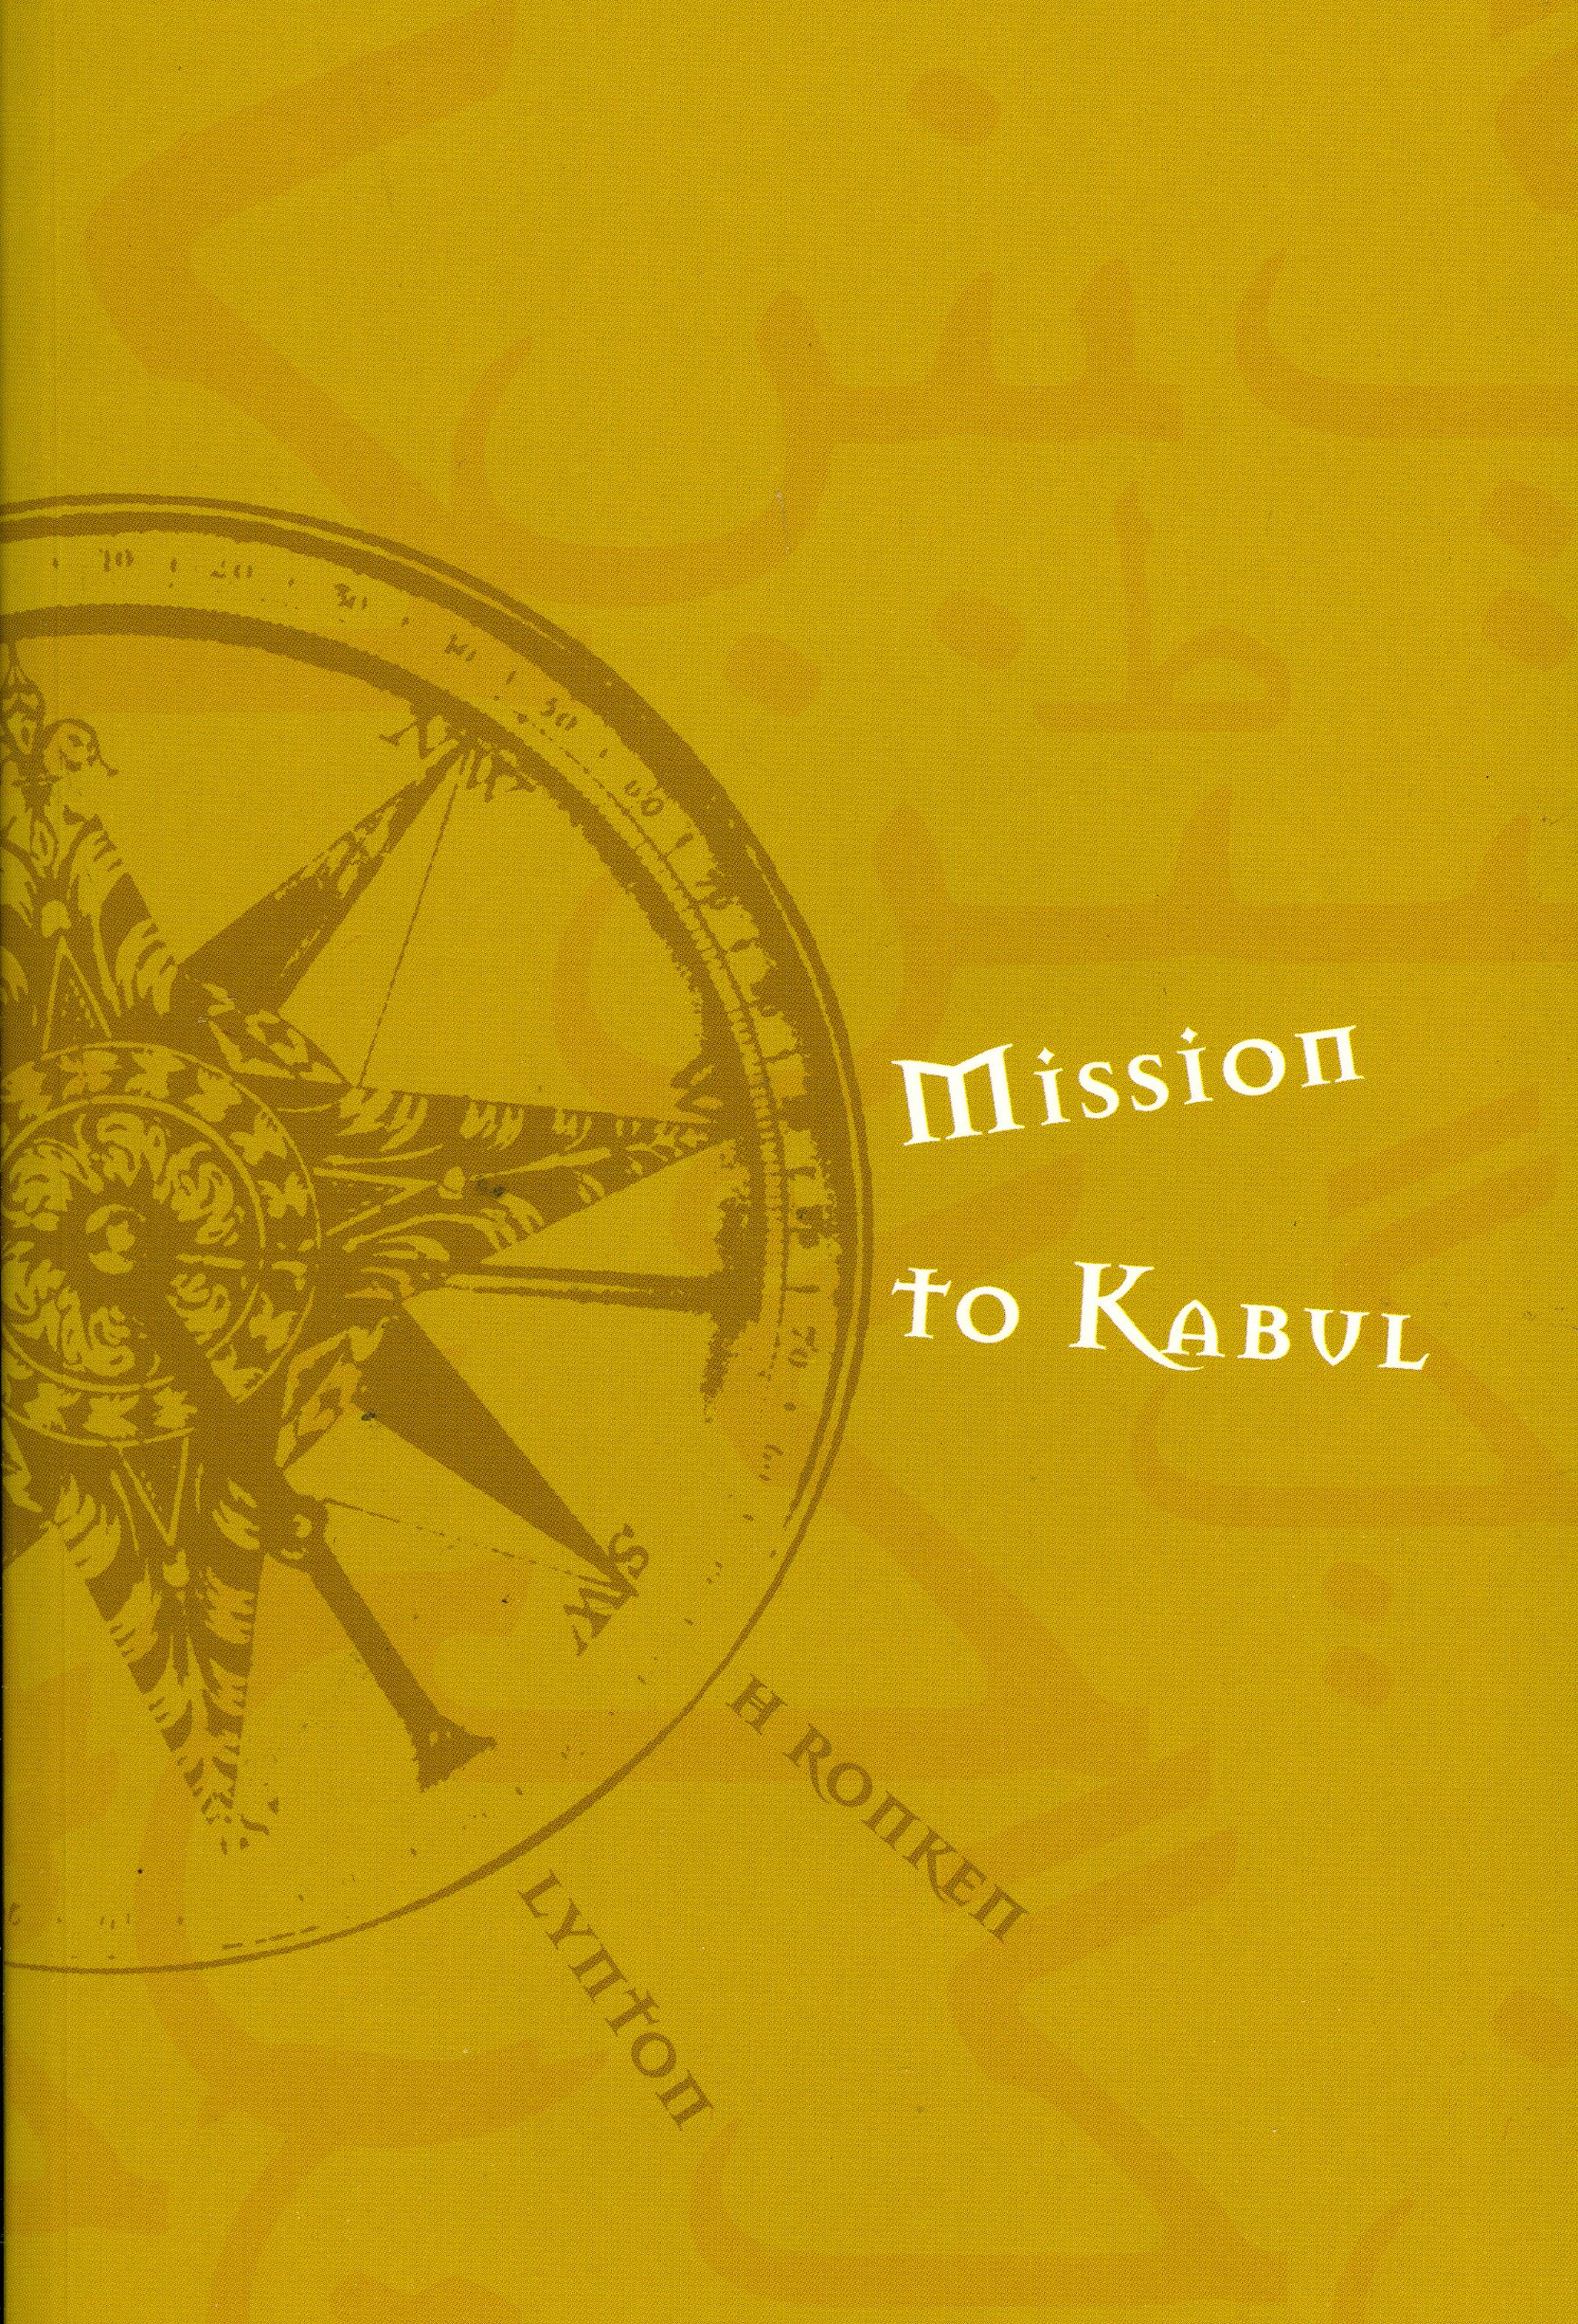 Mission to Kabul